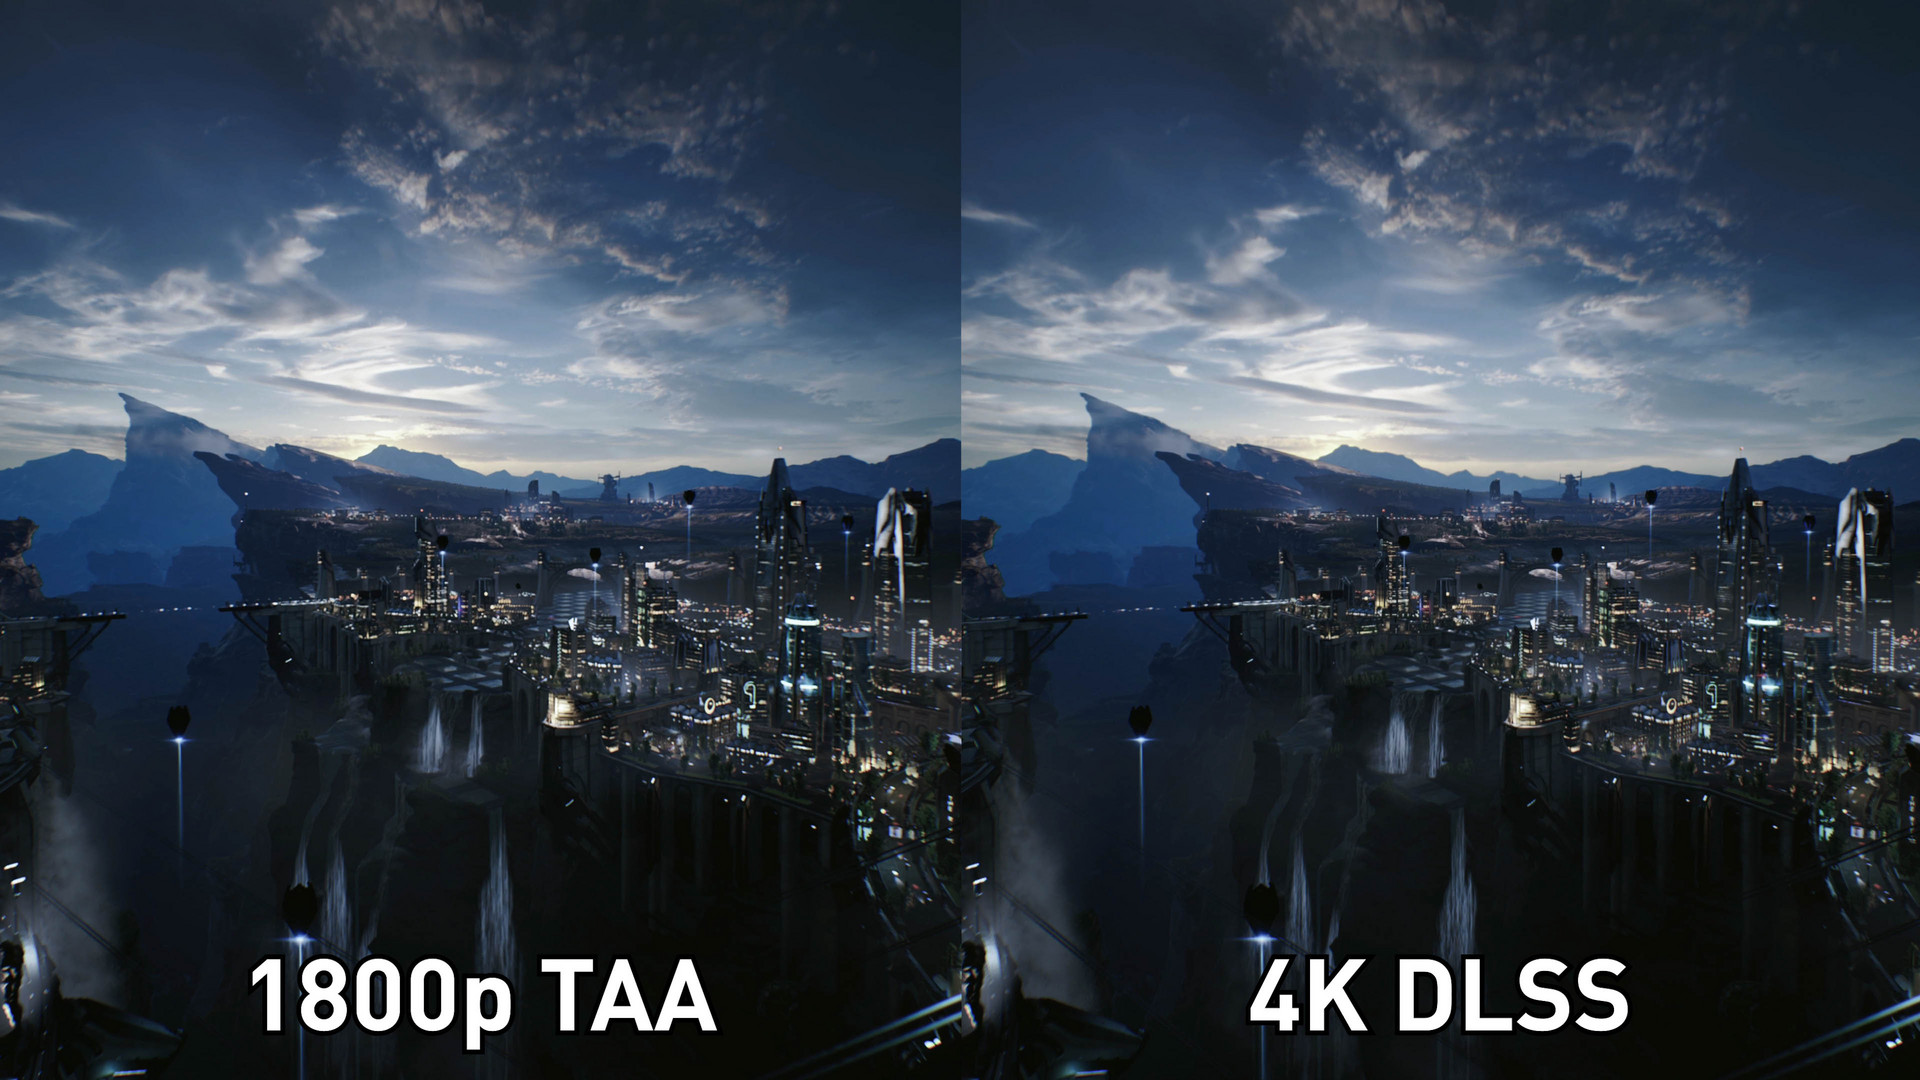 Nvidia\u0027s DLSS technology makes 1440p look like 1800p, says PC